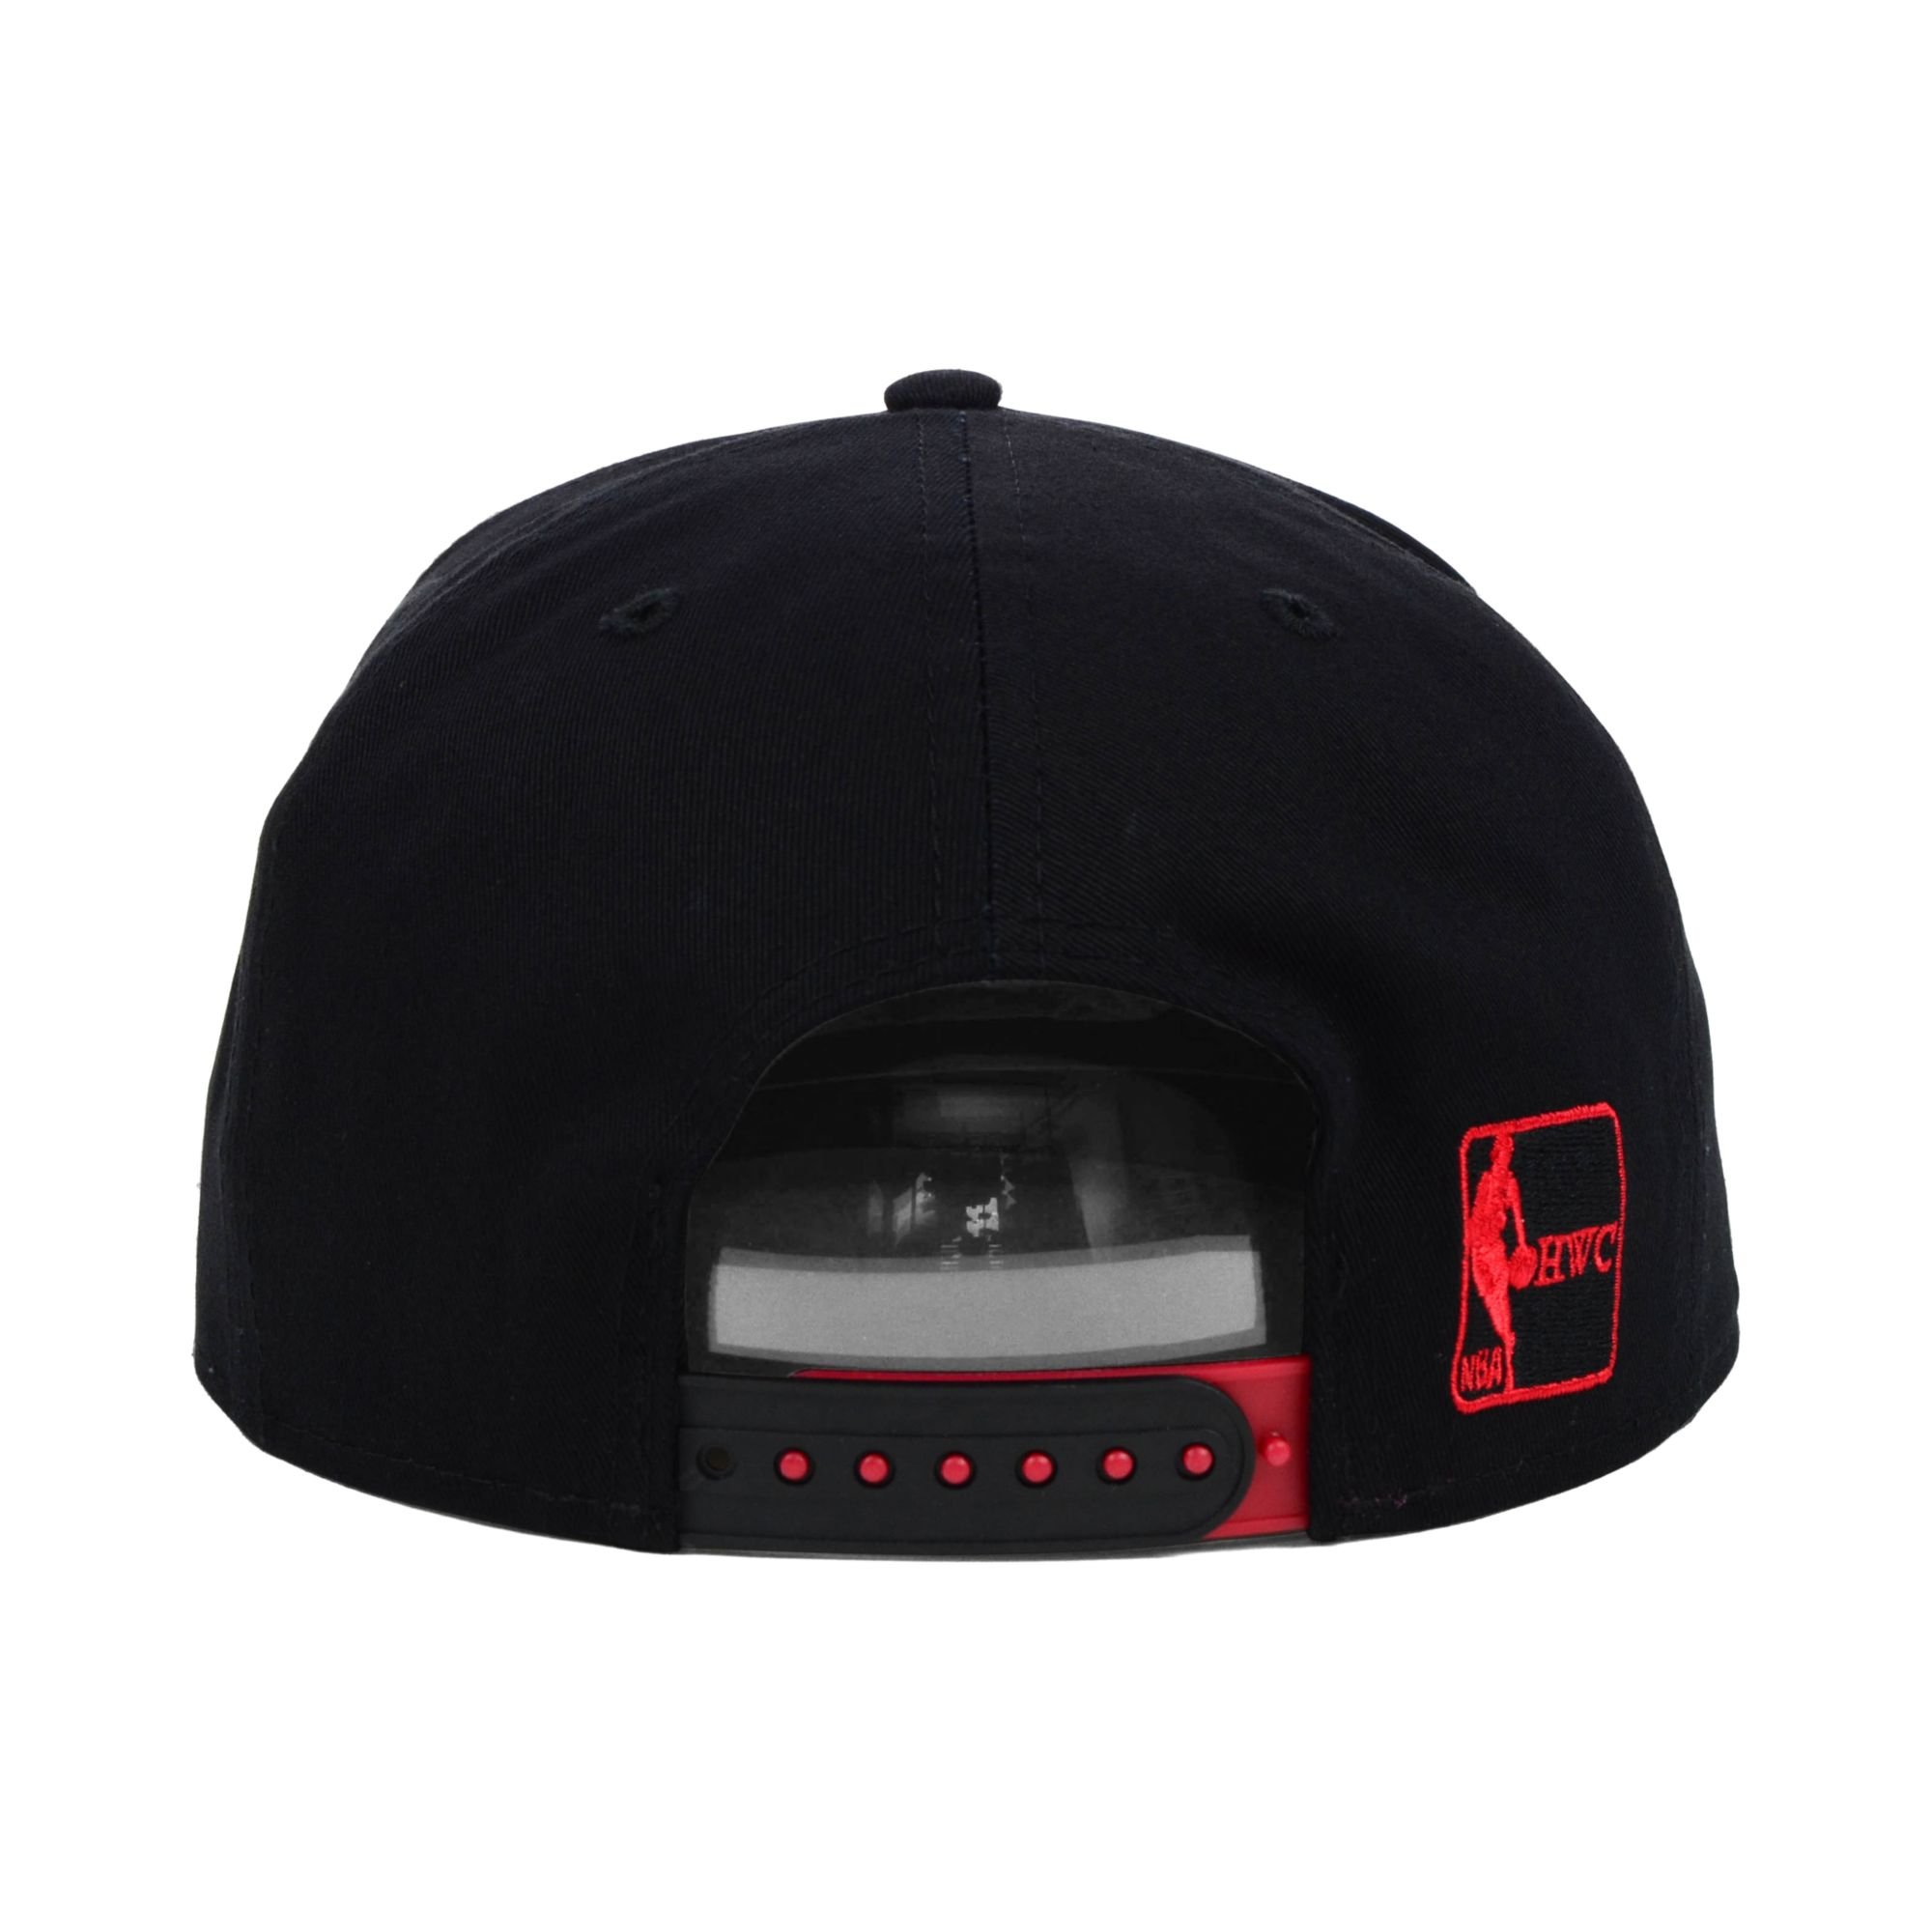 culture store hr b featured miami red black and heat image products snapback r court watches